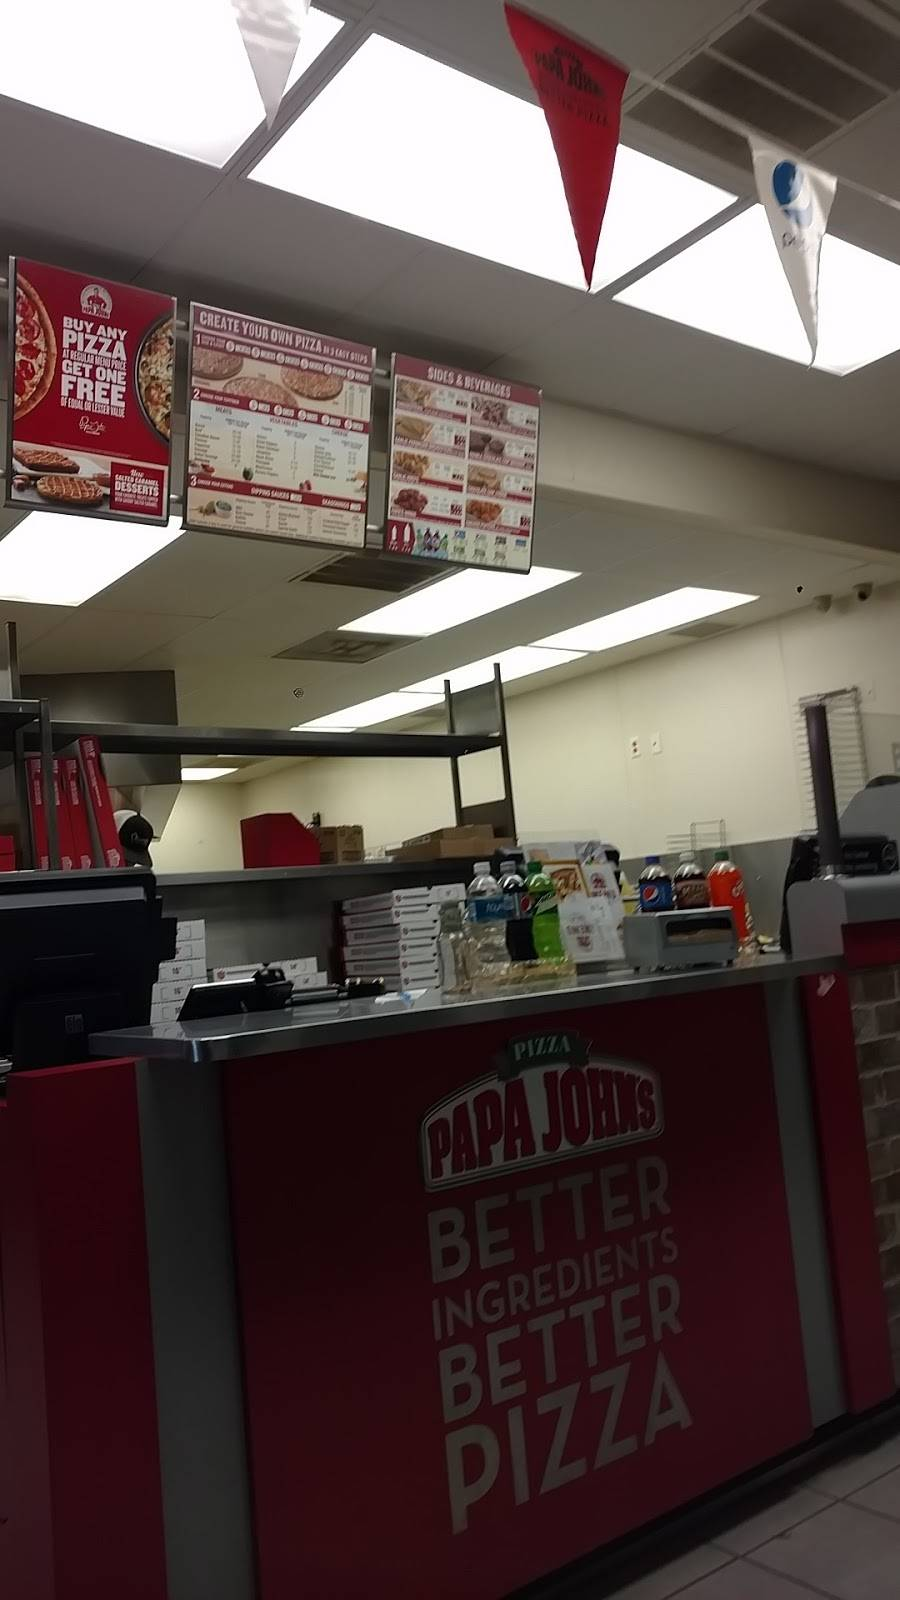 Papa Johns Pizza | meal delivery | 1601 N Texas Ave #120, Bryan, TX 77803, USA | 9797781500 OR +1 979-778-1500